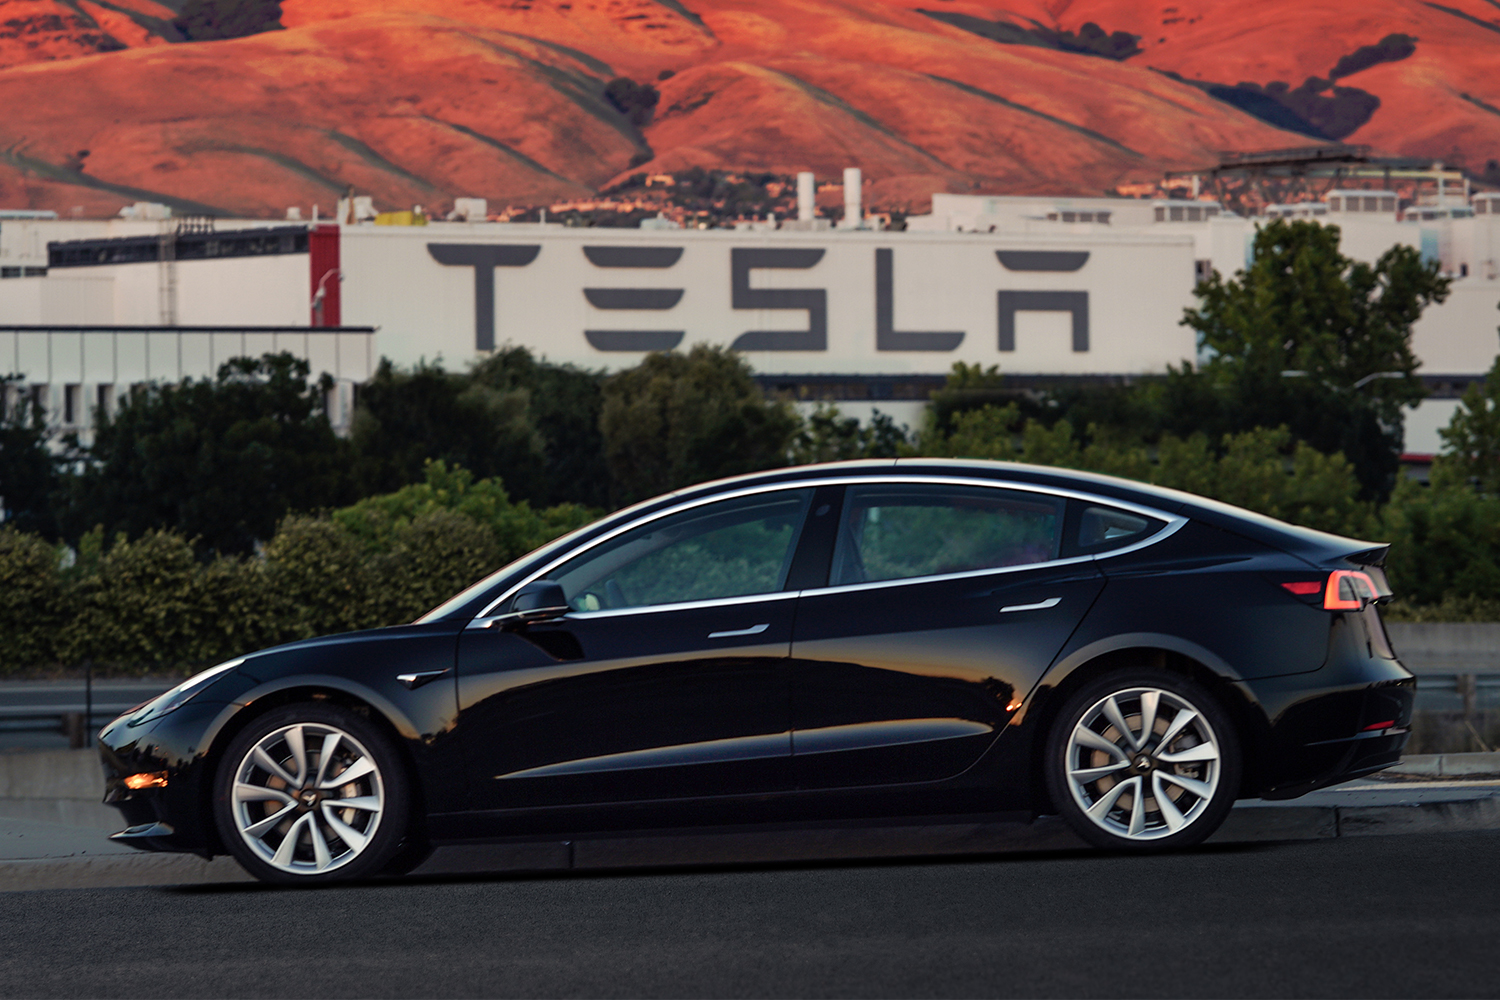 Tesla Electric Vehicles and Factory